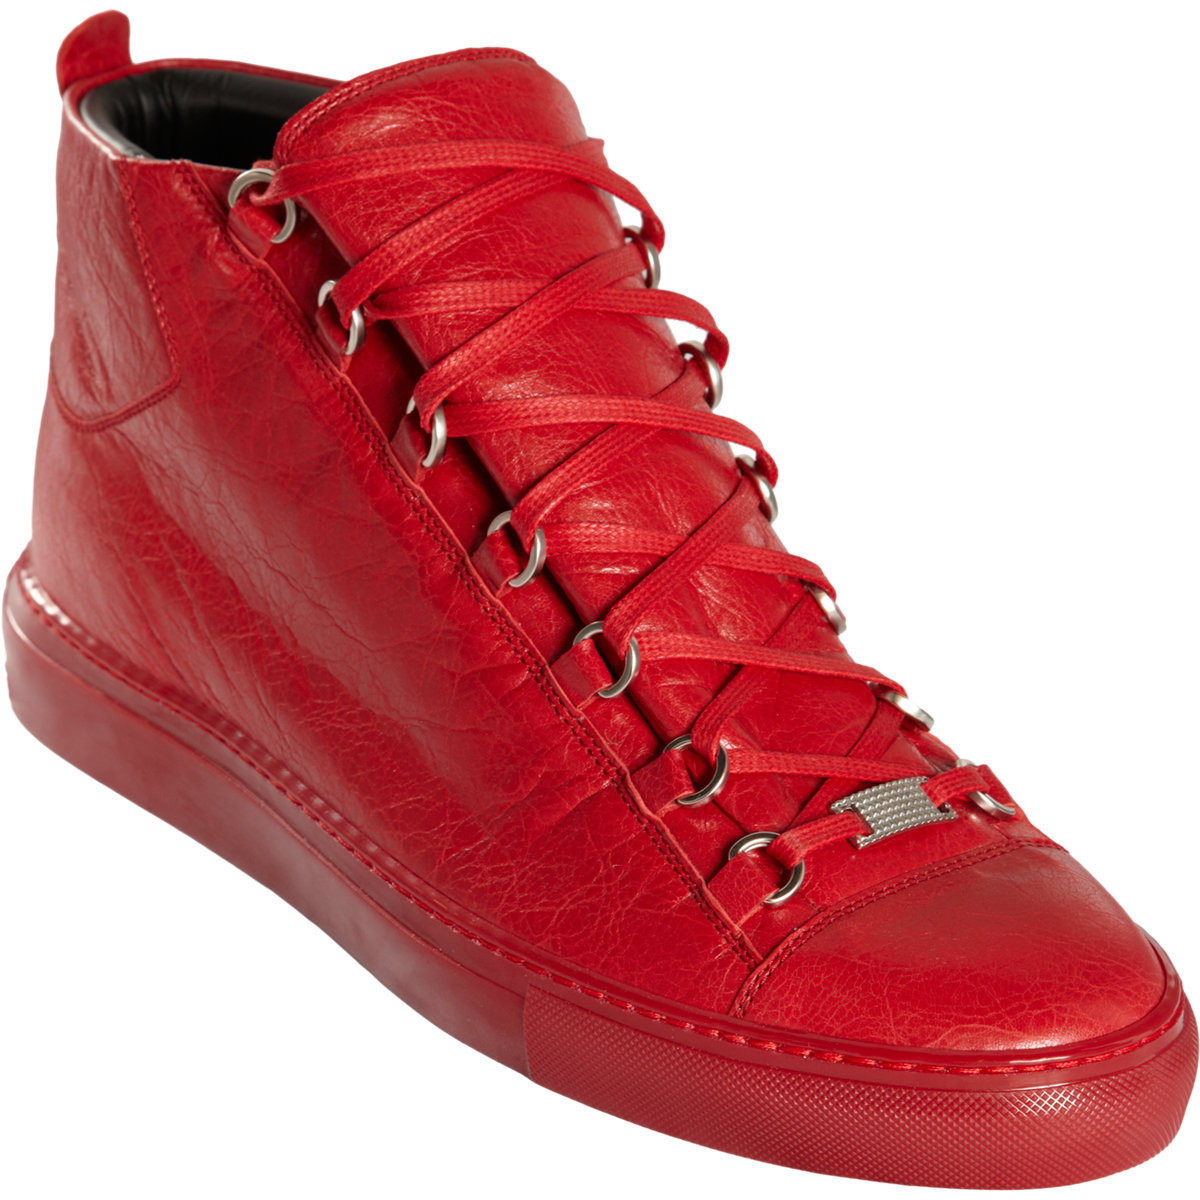 balenciaga arena leather high top sneakers in red for men lyst. Black Bedroom Furniture Sets. Home Design Ideas